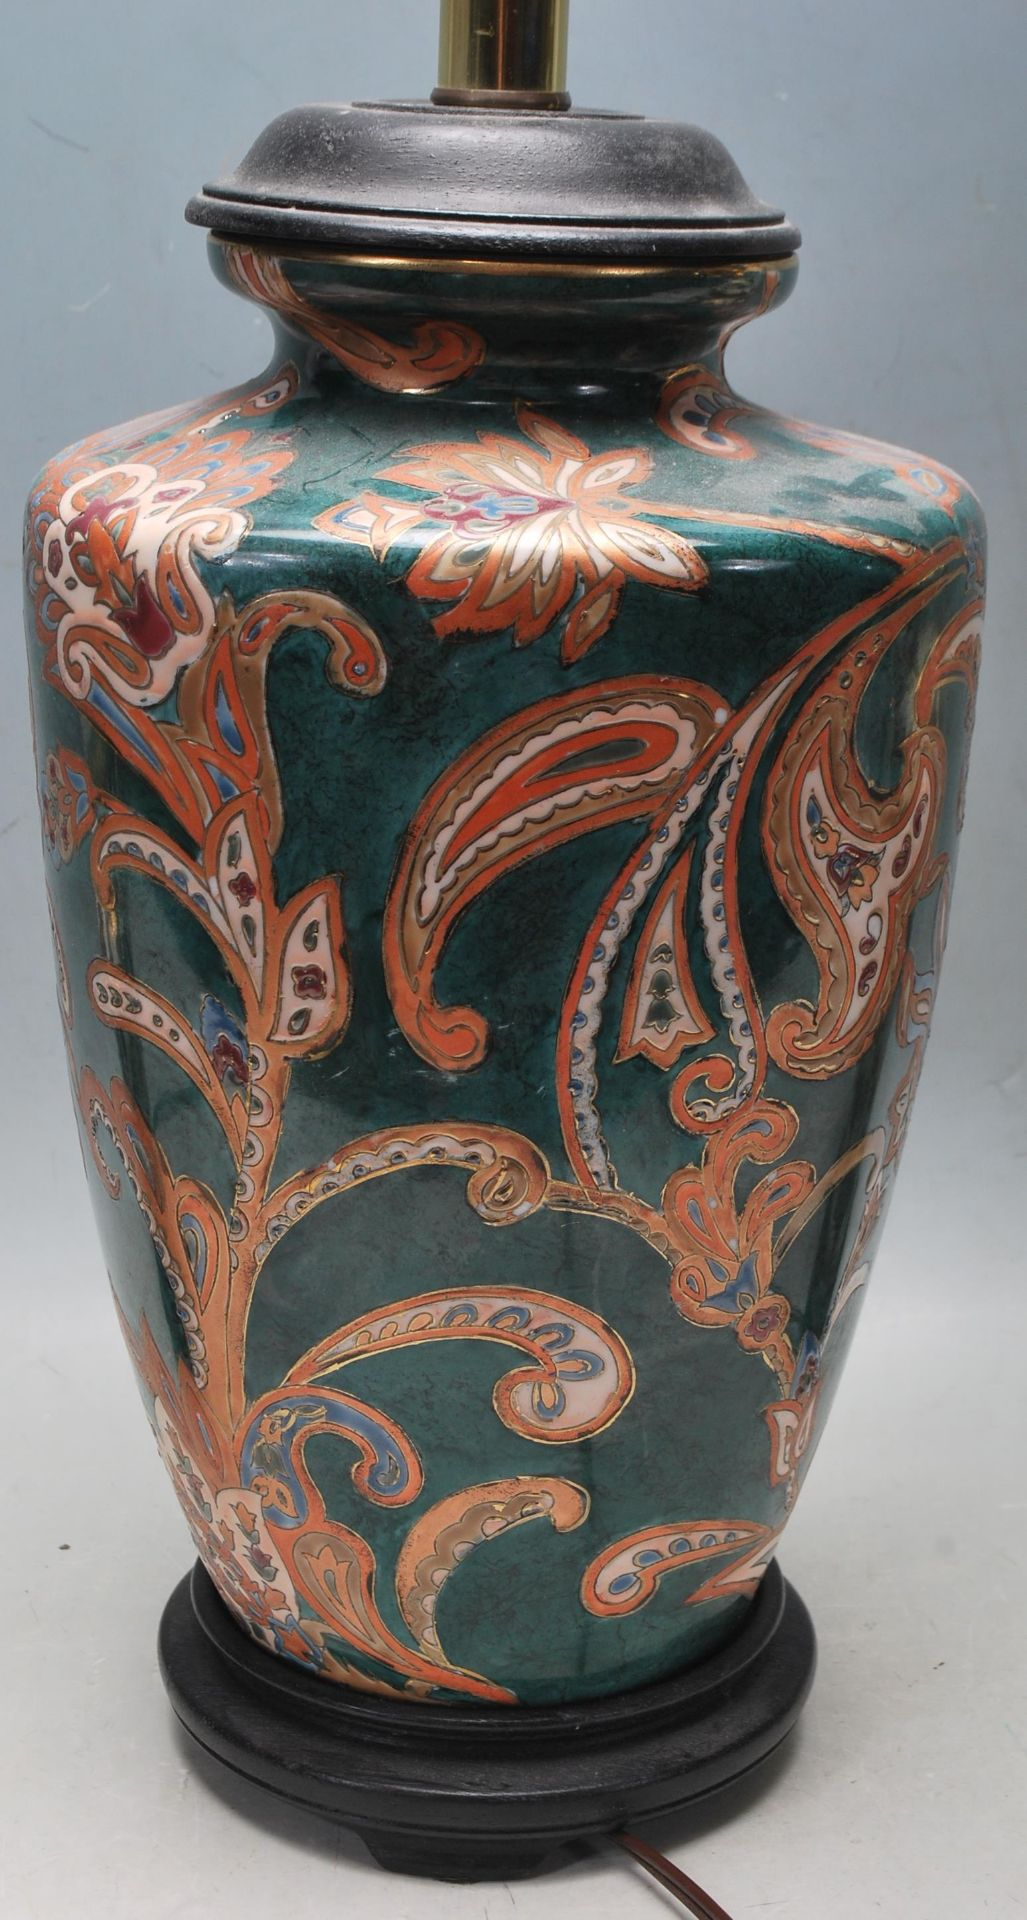 COLLECTION OF KUTANI / FAMILLE ROSE TABLE LAMPS - Image 3 of 7